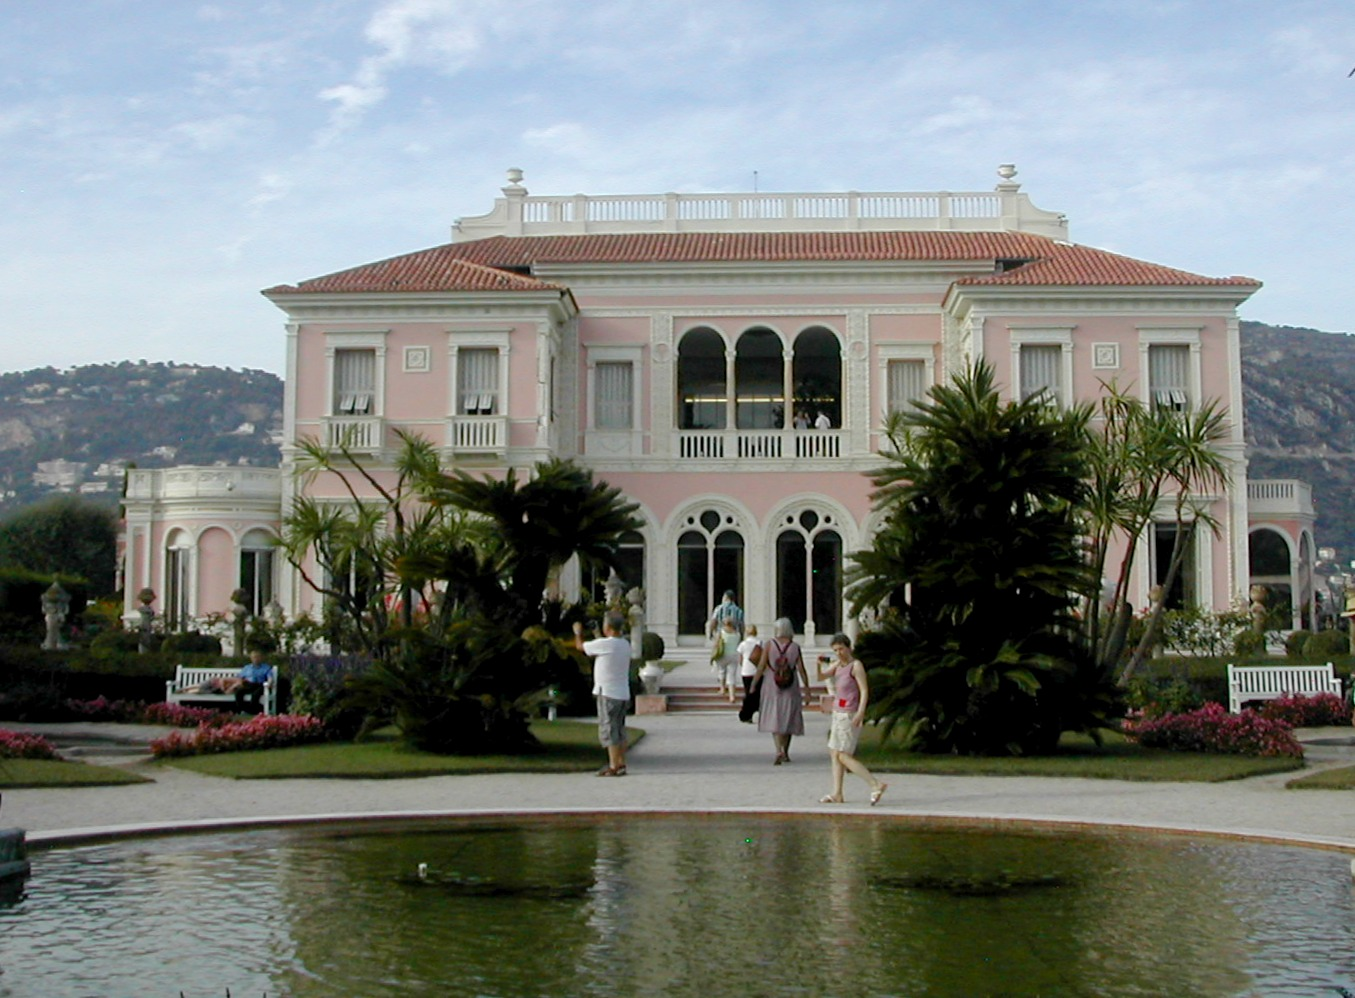 villa & jardins ephrussi de rothschild – Green Rabbit Designs